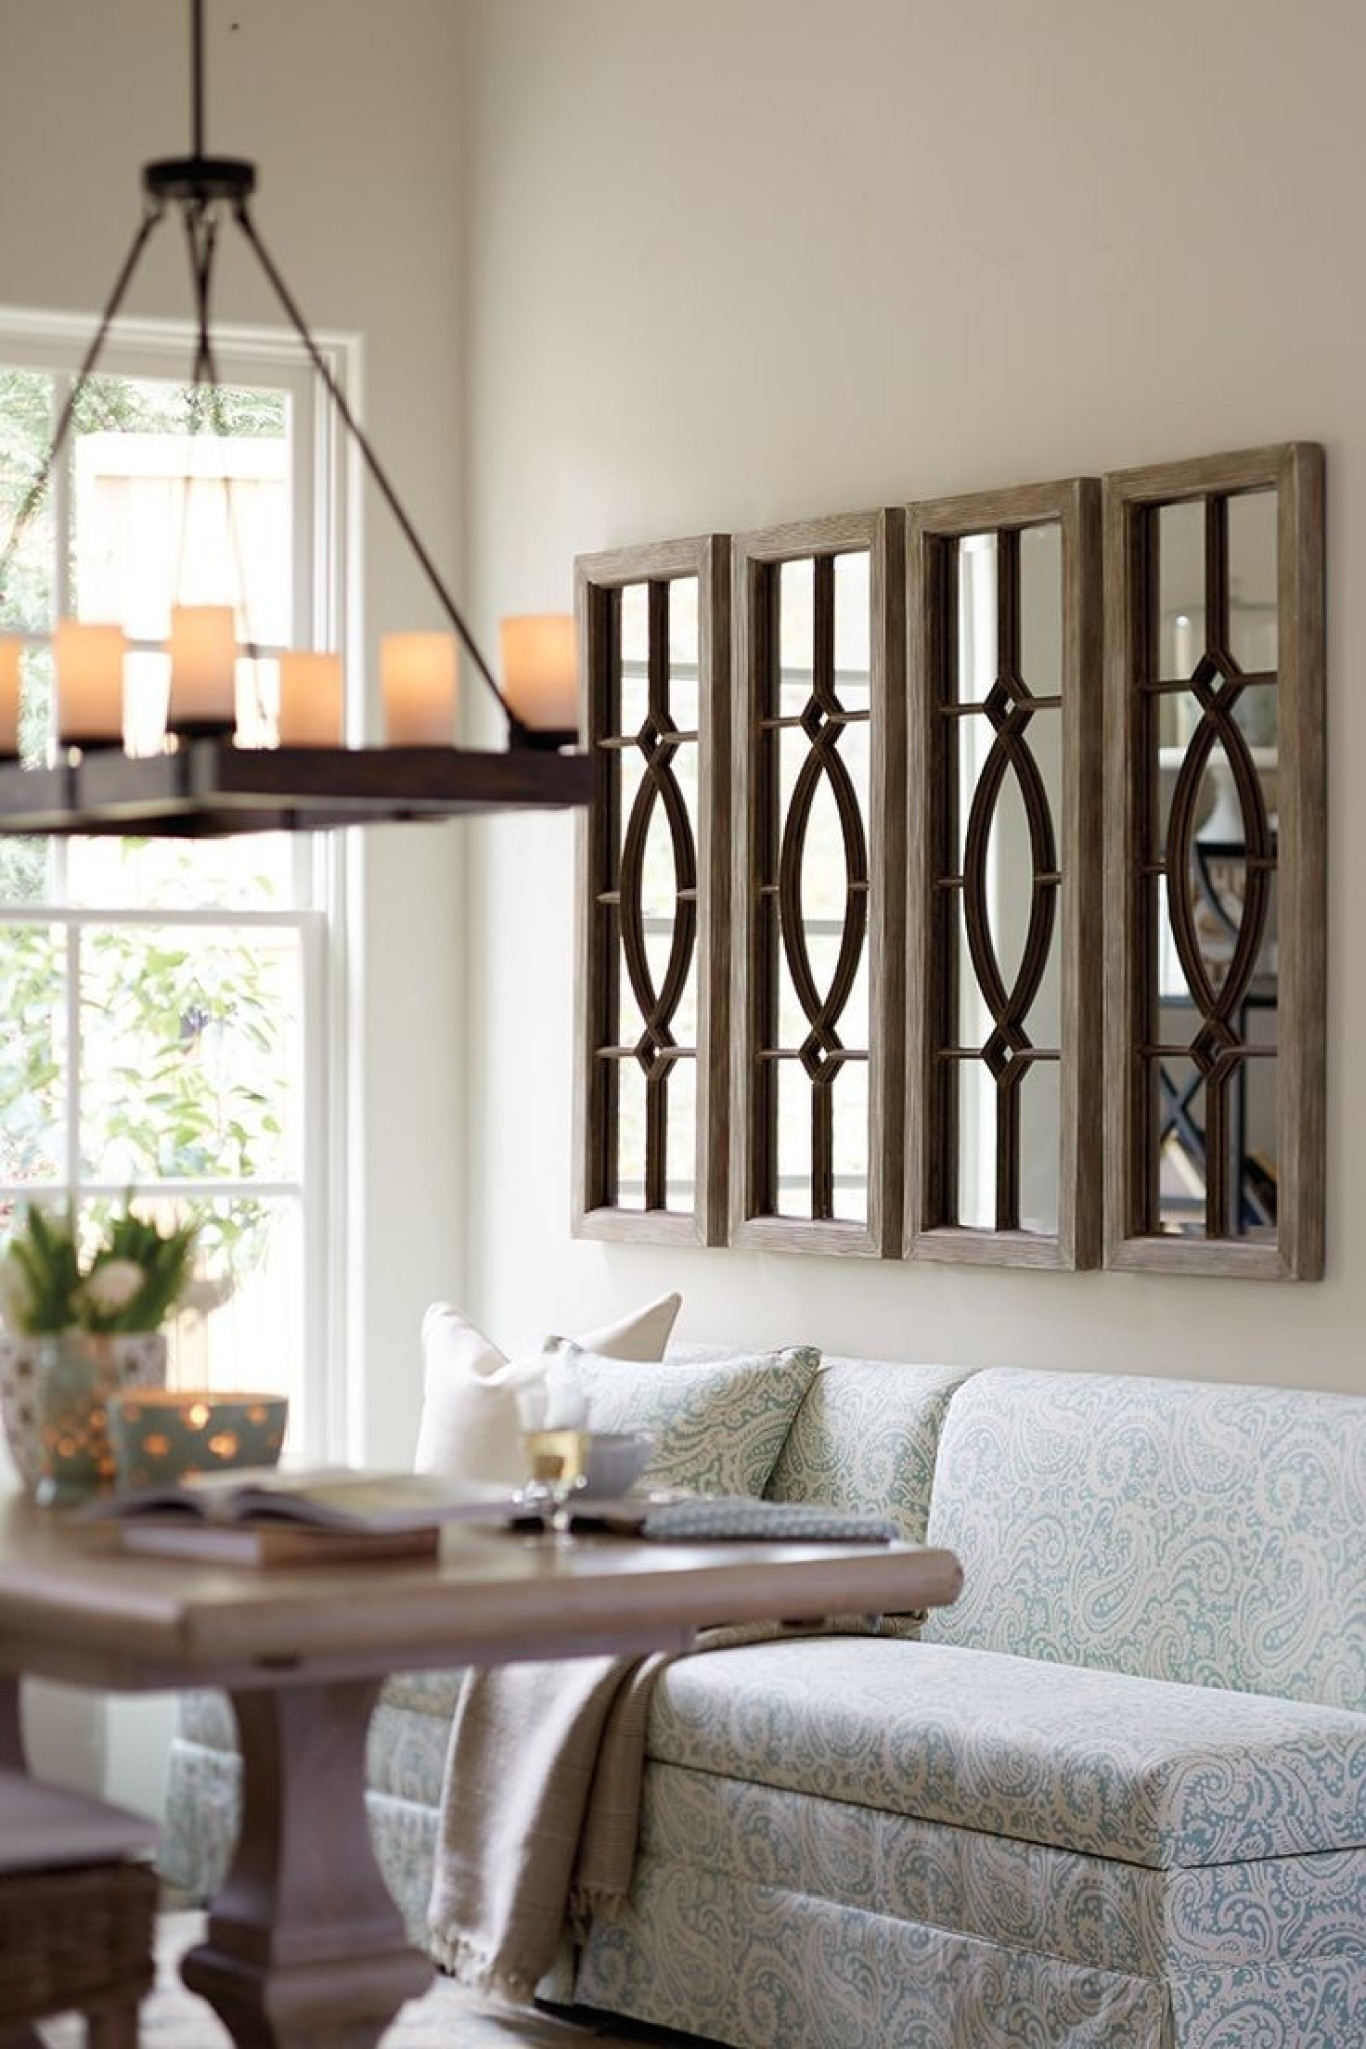 Wall Decor Throughout Most Current Wall Accents For Dining Room (View 15 of 15)